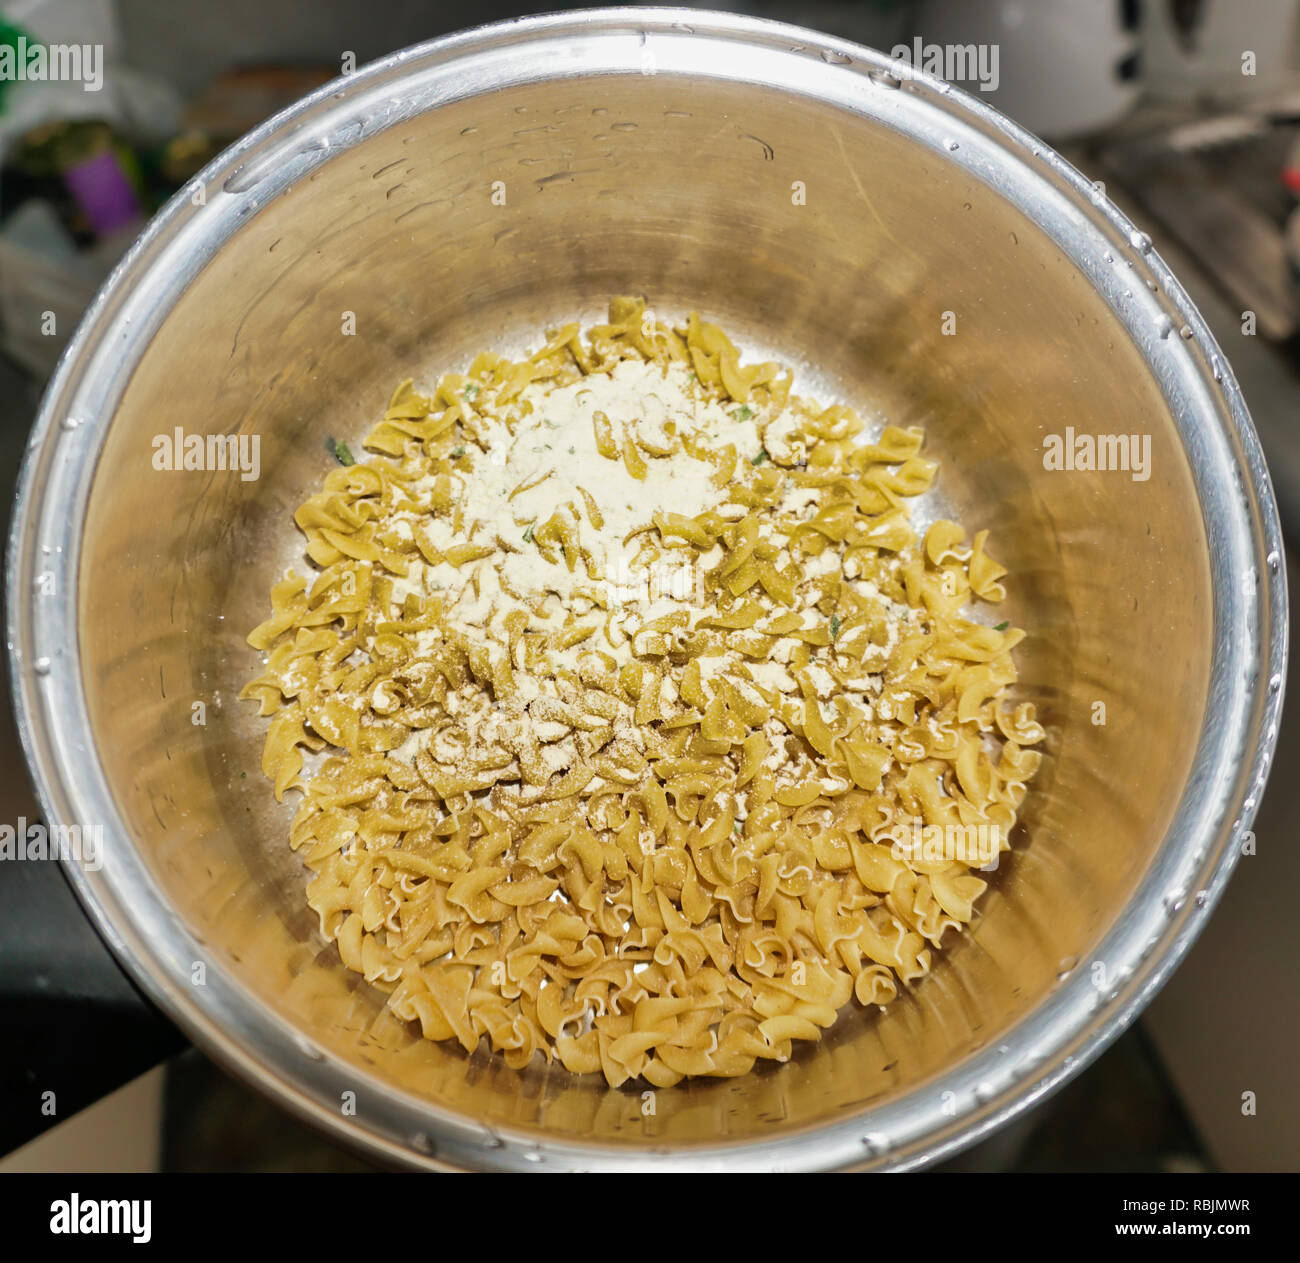 contents of Continental Pasta & Sauce Creamy Bacon Carbonara 85g satchel poured into a saucepan before adding water - Stock Image